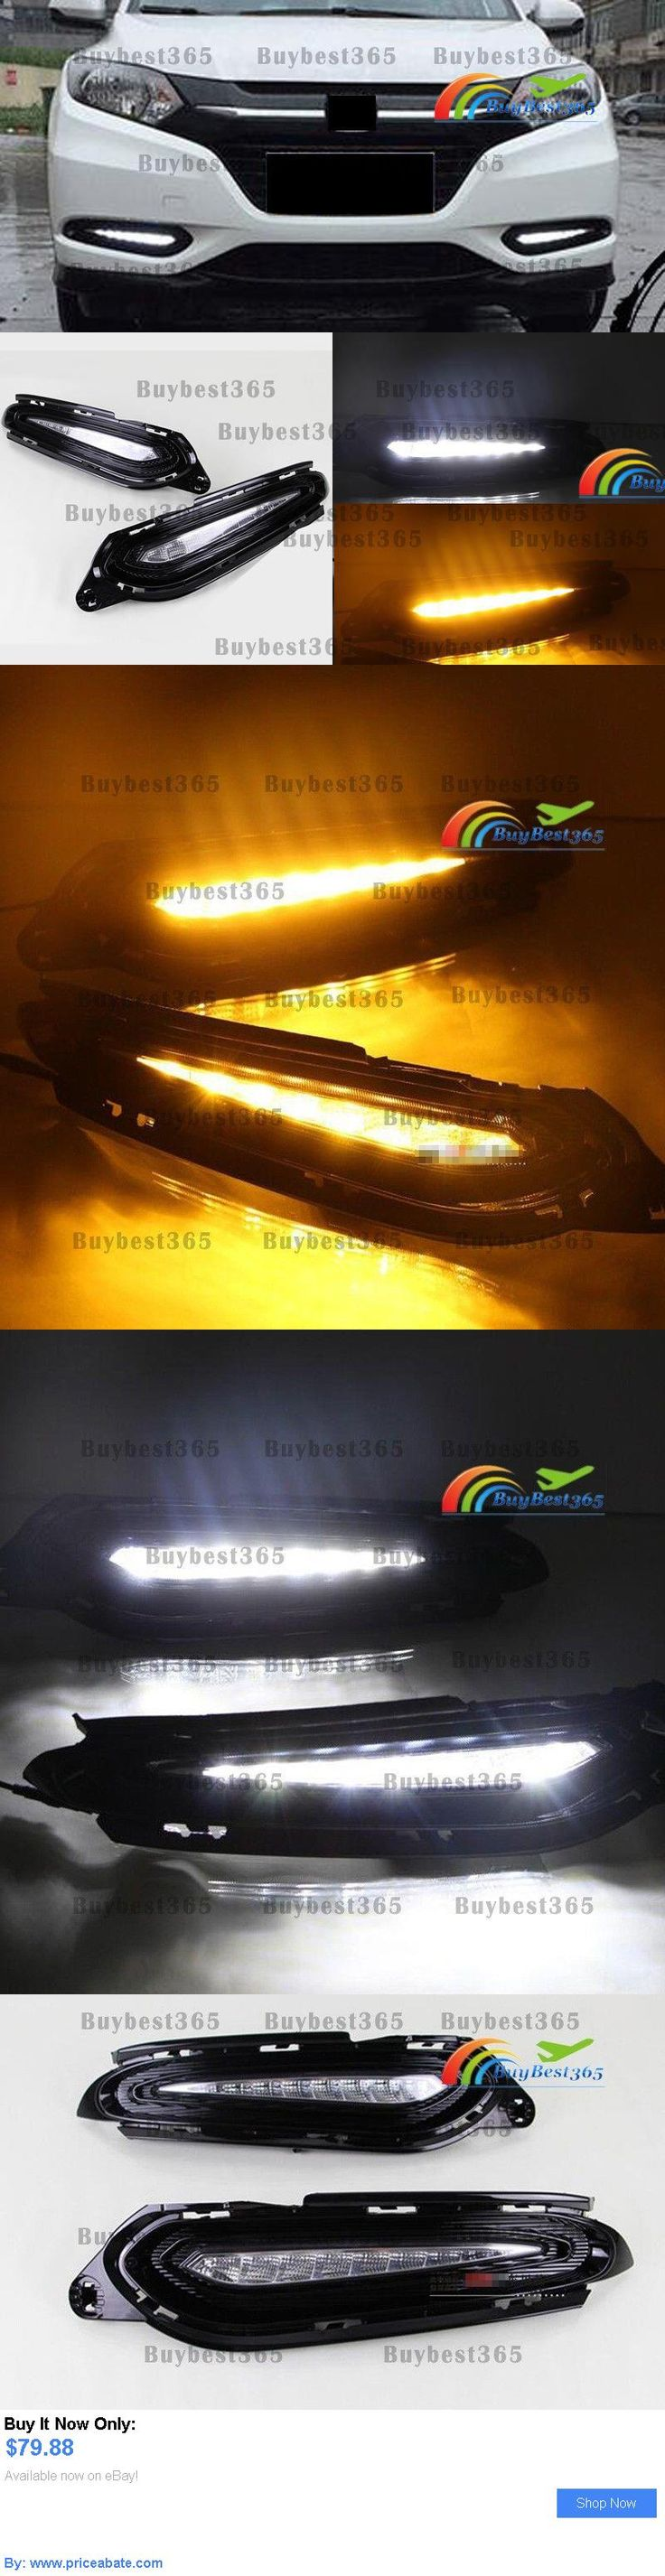 Motors Parts And Accessories: White Led Drl Daytime Running Light Fog Lamp Yellow Signal For Honda Hrv Hr-V Lx BUY IT NOW ONLY: $79.88 #priceabateMotorsPartsAndAccessories OR #priceabate